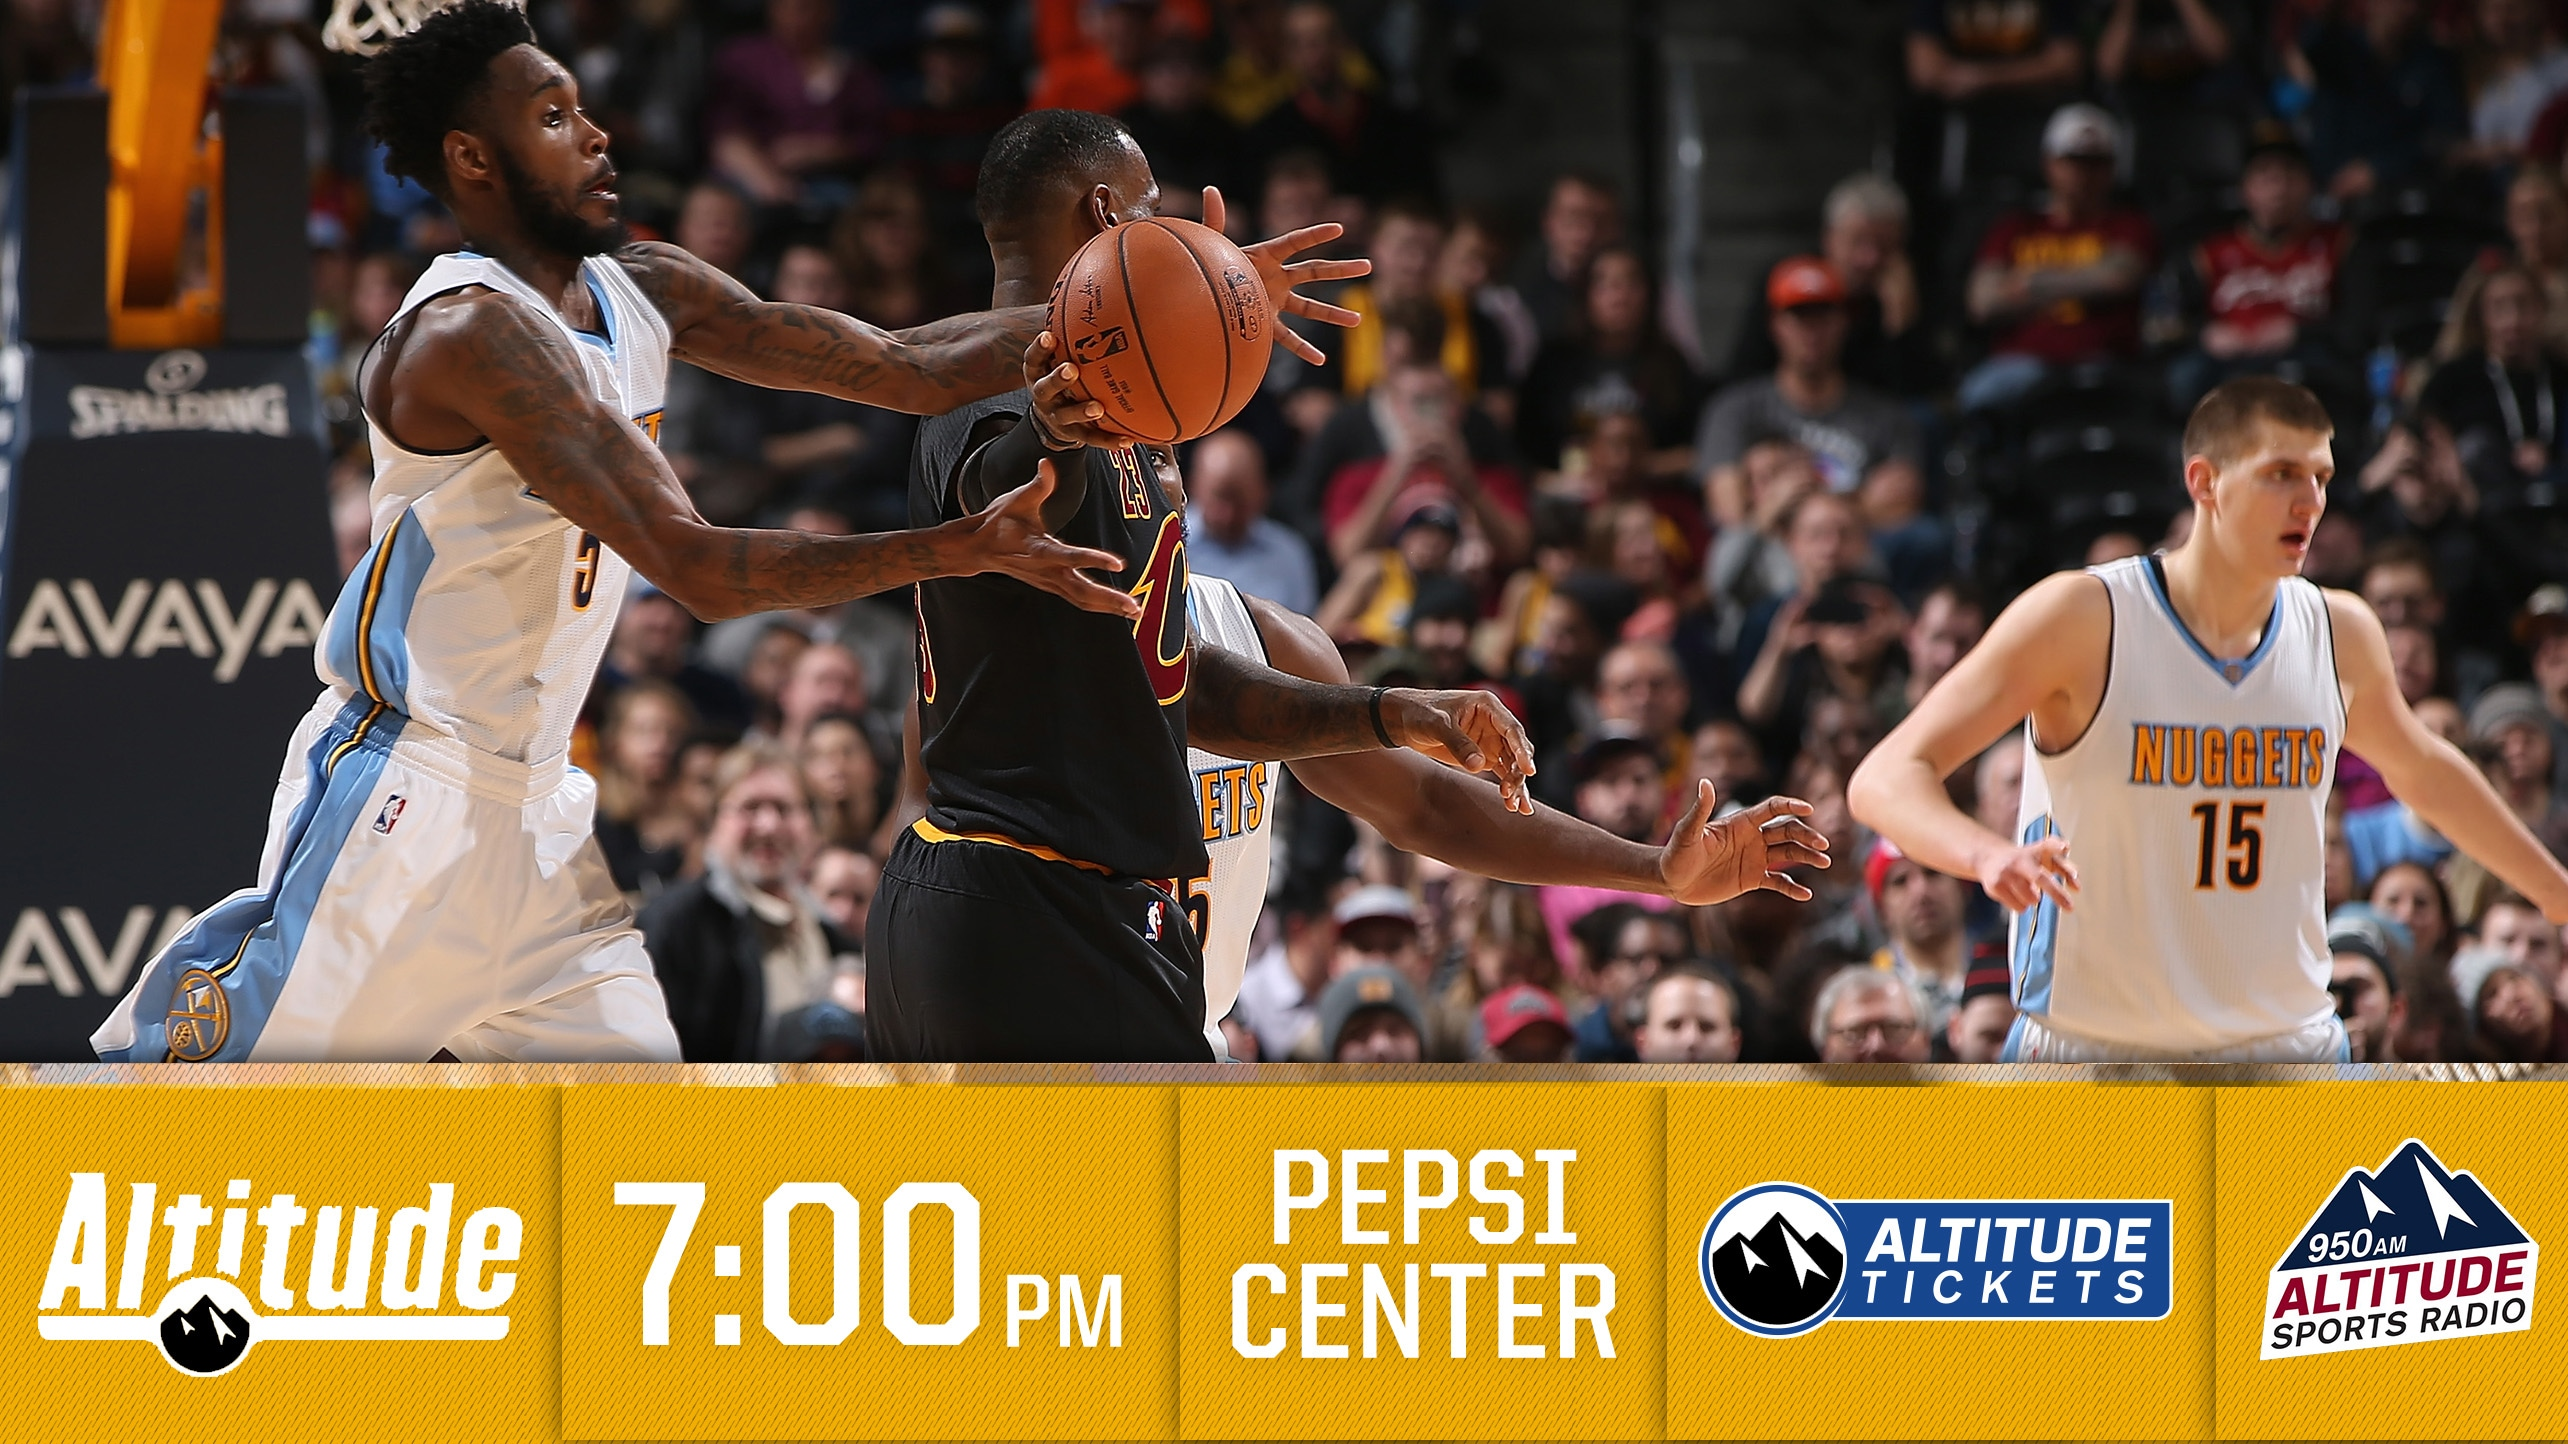 Nuggets Look to Get Back on the Winning Track Against Cavaliers